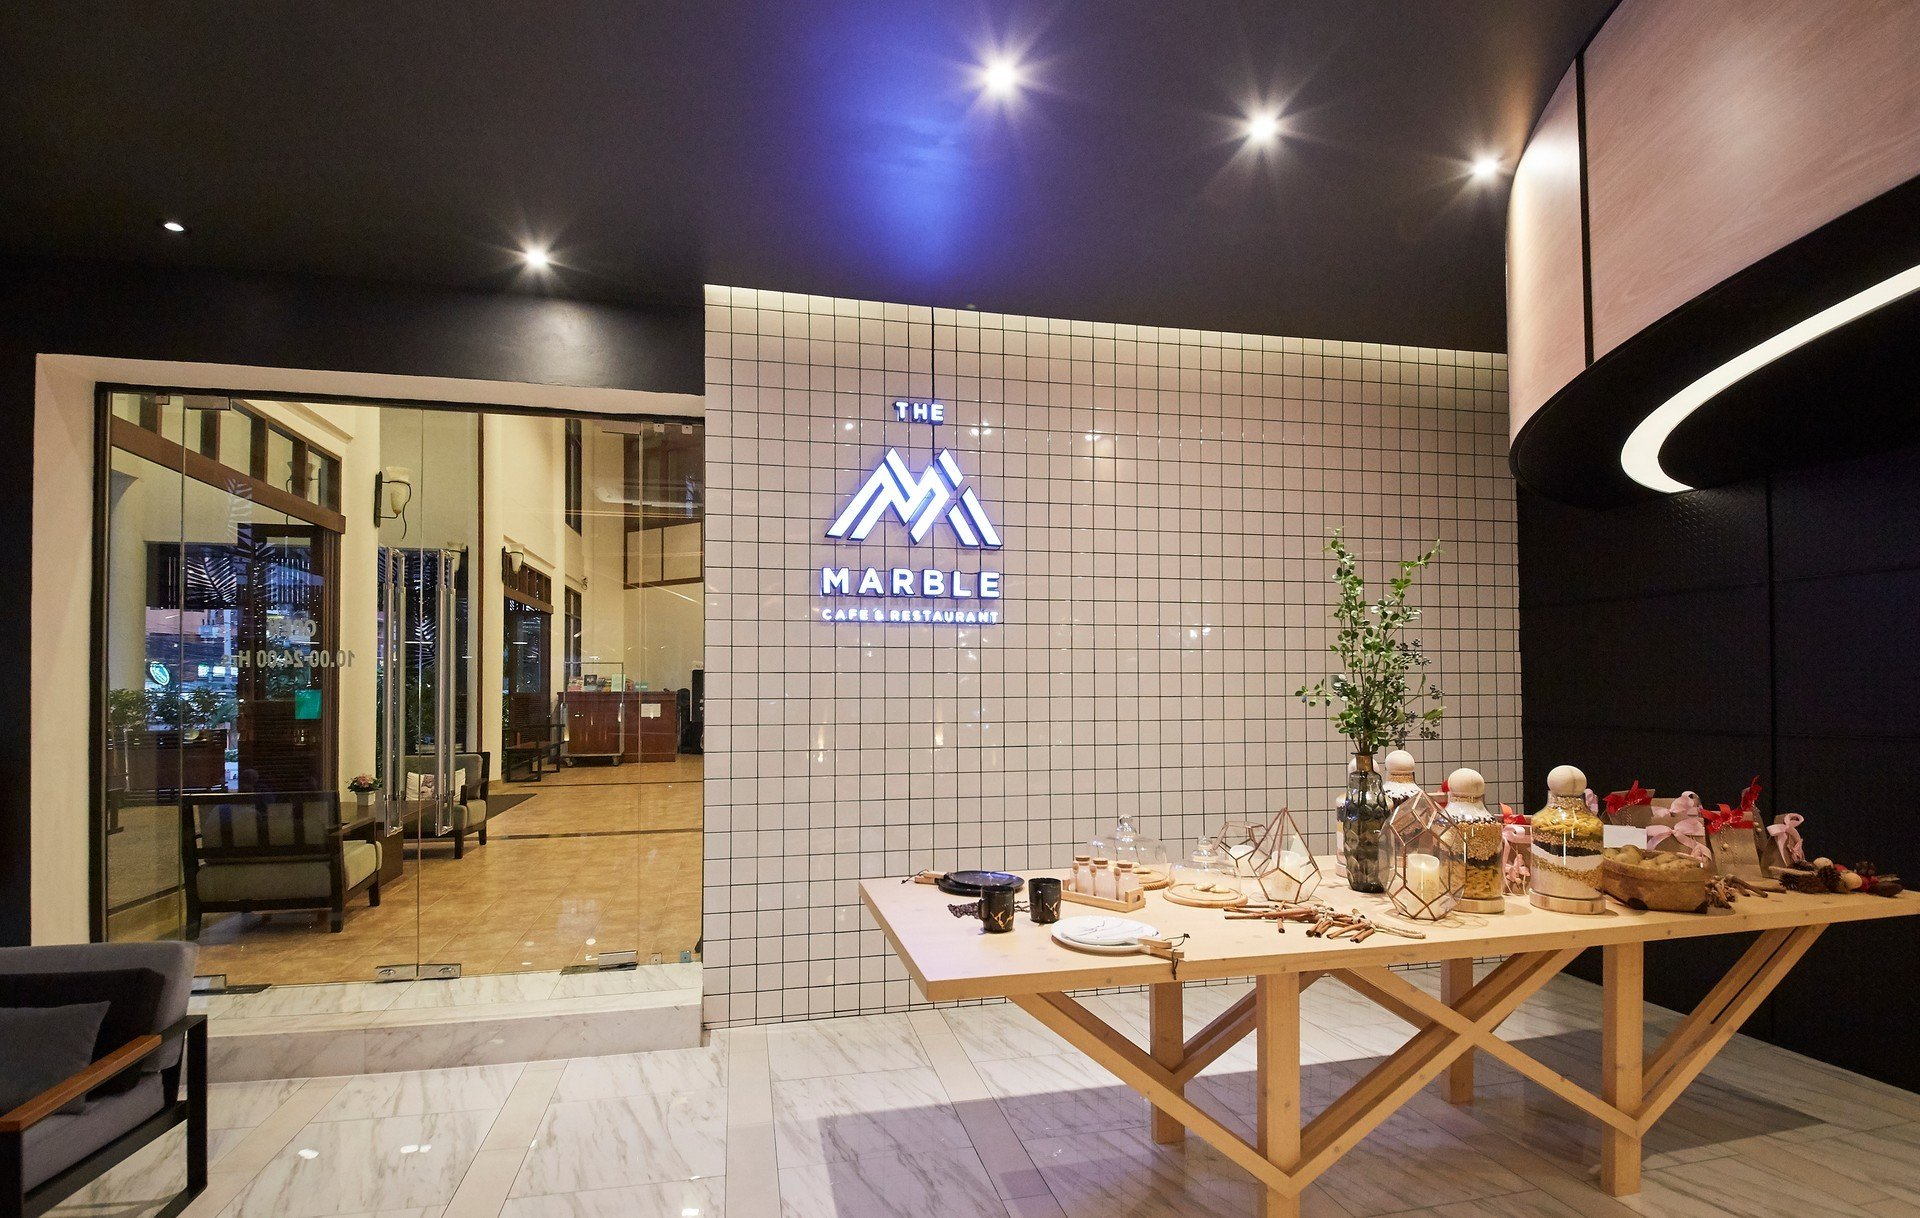 The Marble Cafe & Restaurant